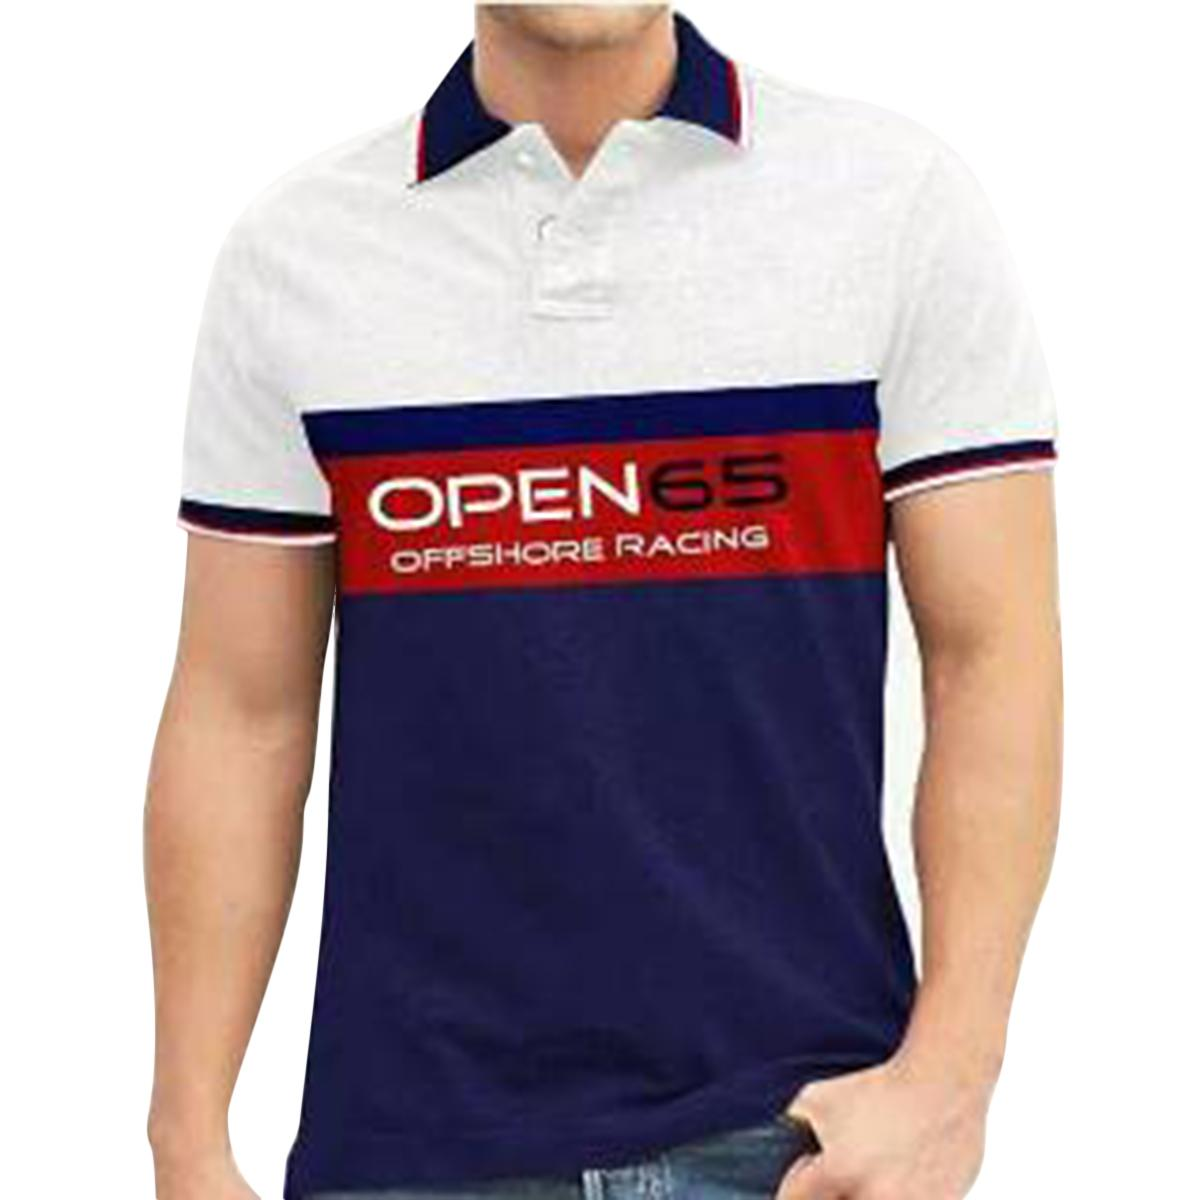 4b9779554 Men's Polo T Shirts In Bangladesh At Best Price - Daraz.com.bd